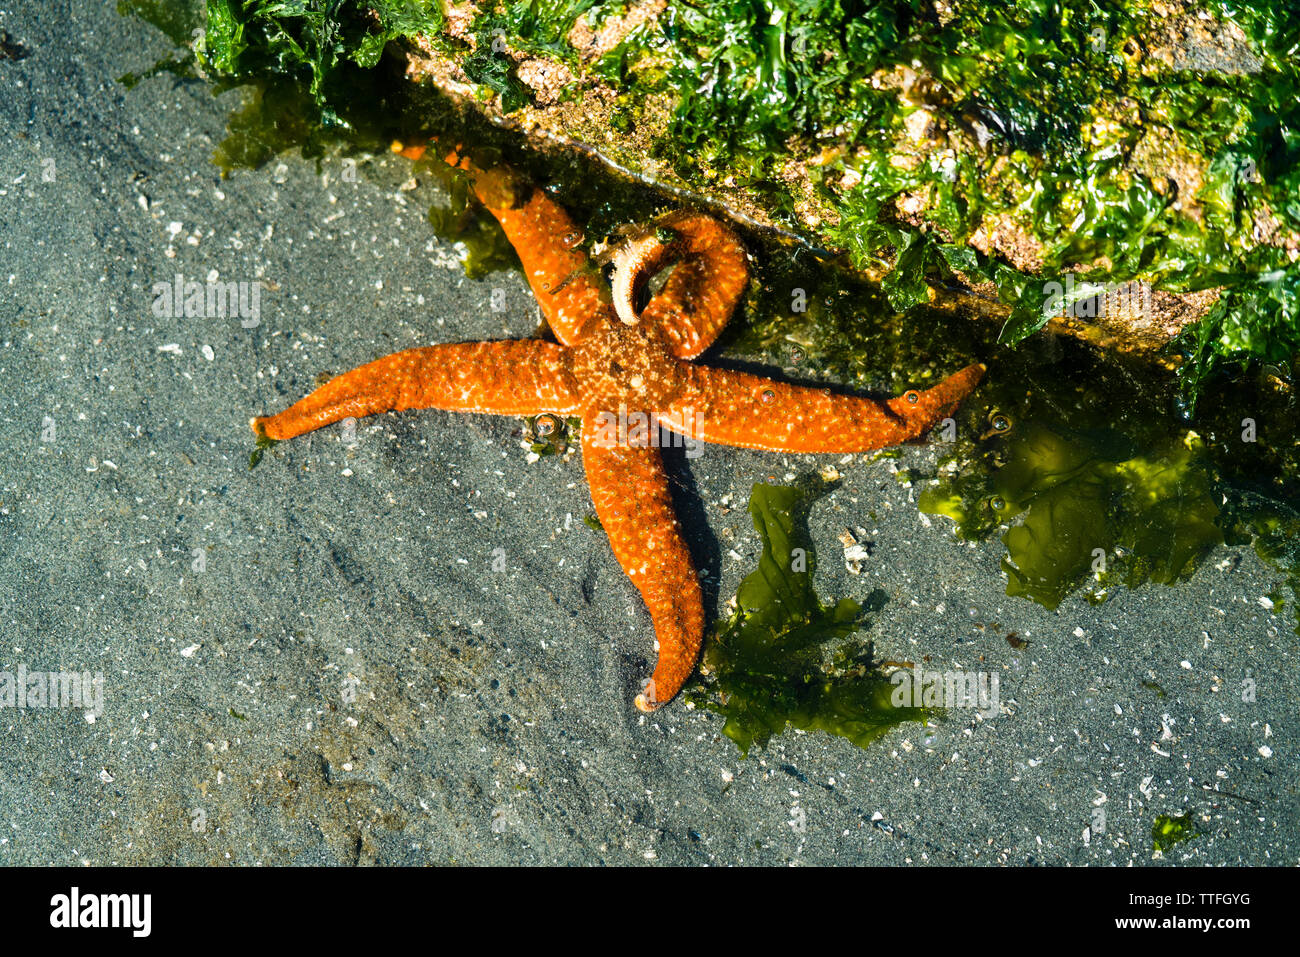 View from above of an orange sea star in a tide pool - Stock Image